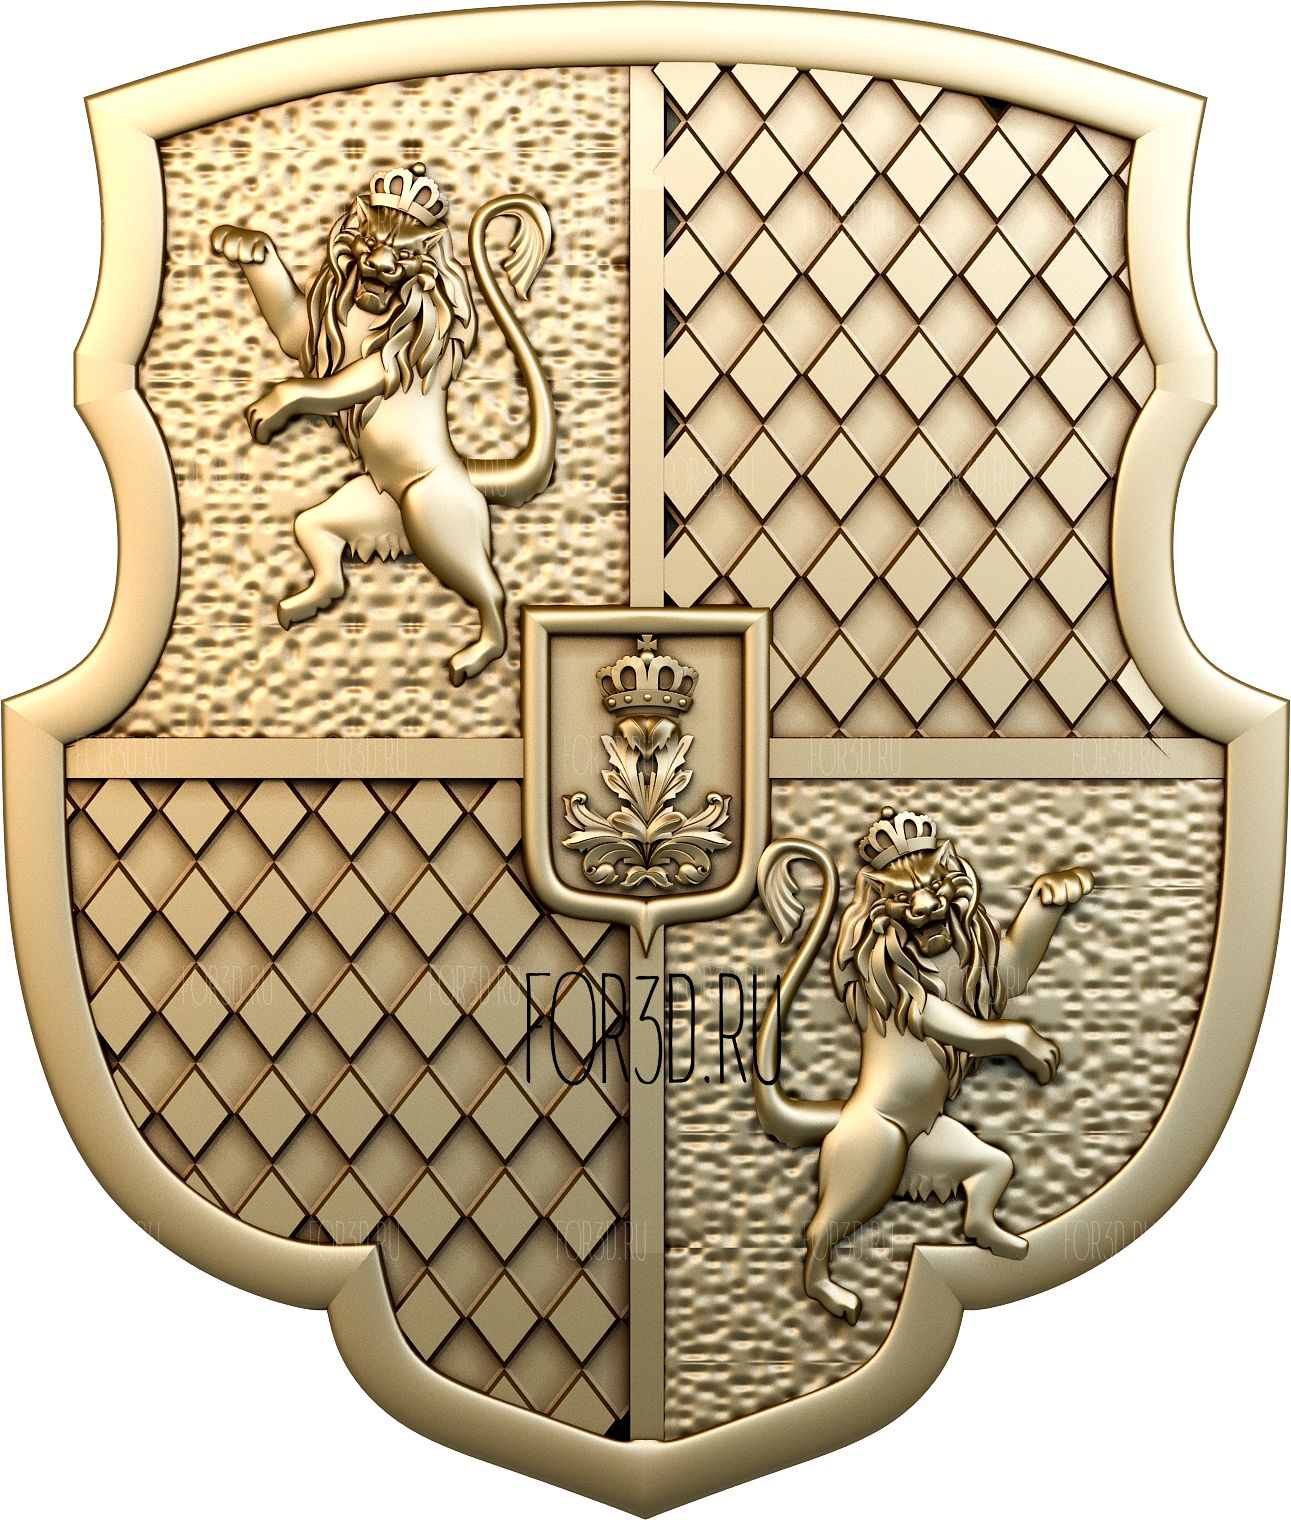 Coat of arms 0032 3d stl модель для ЧПУ